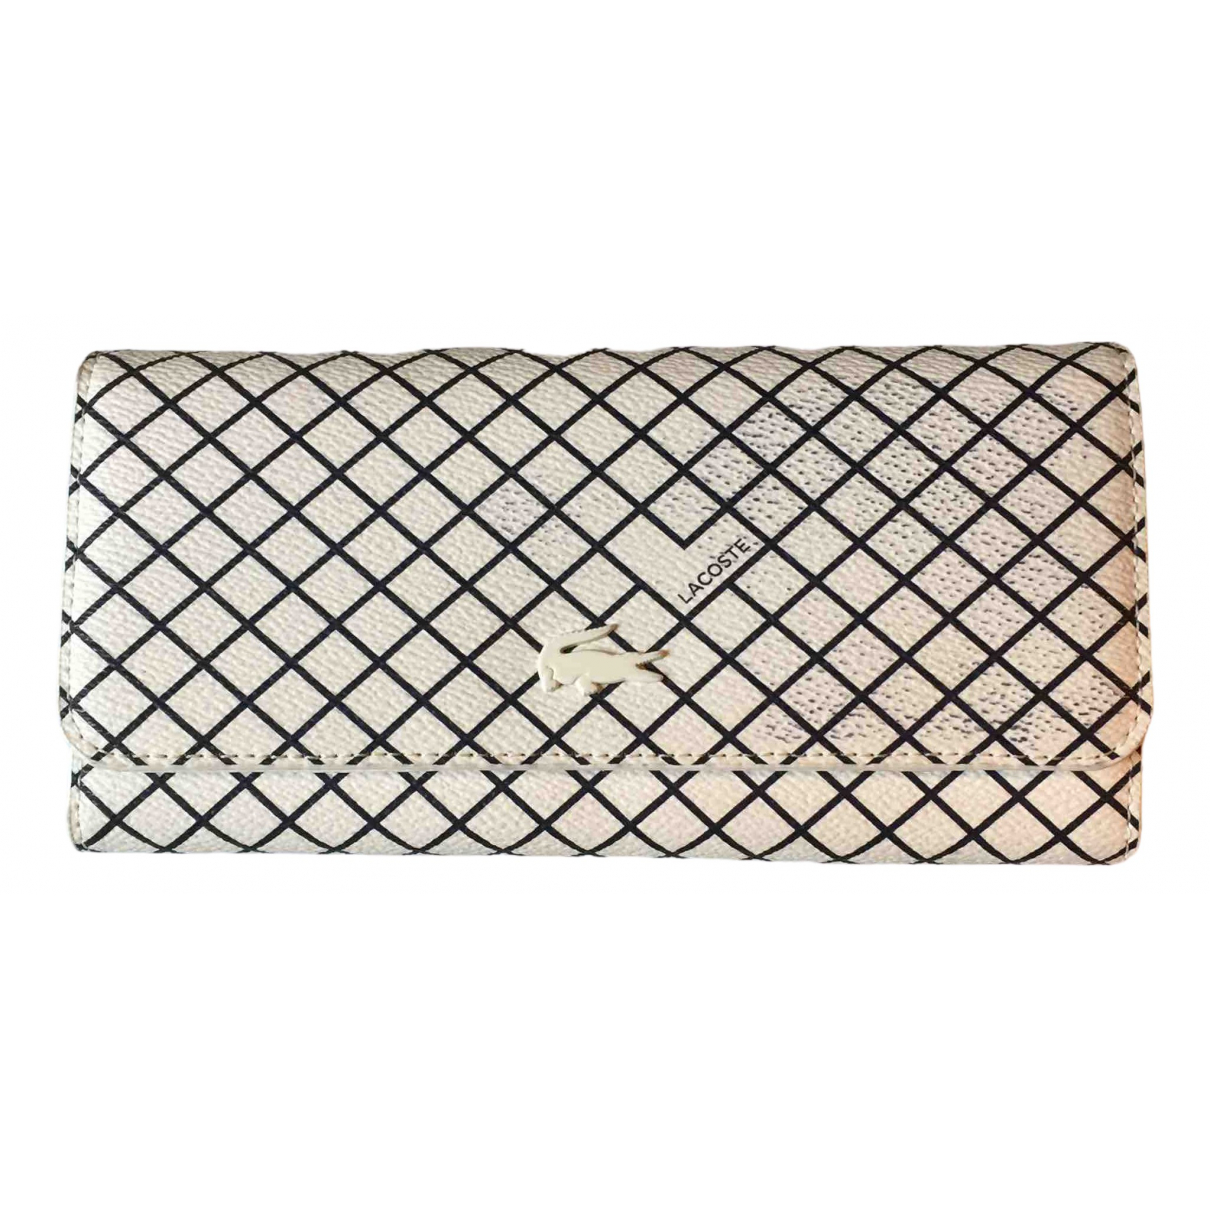 Lacoste N White Leather wallet for Women N